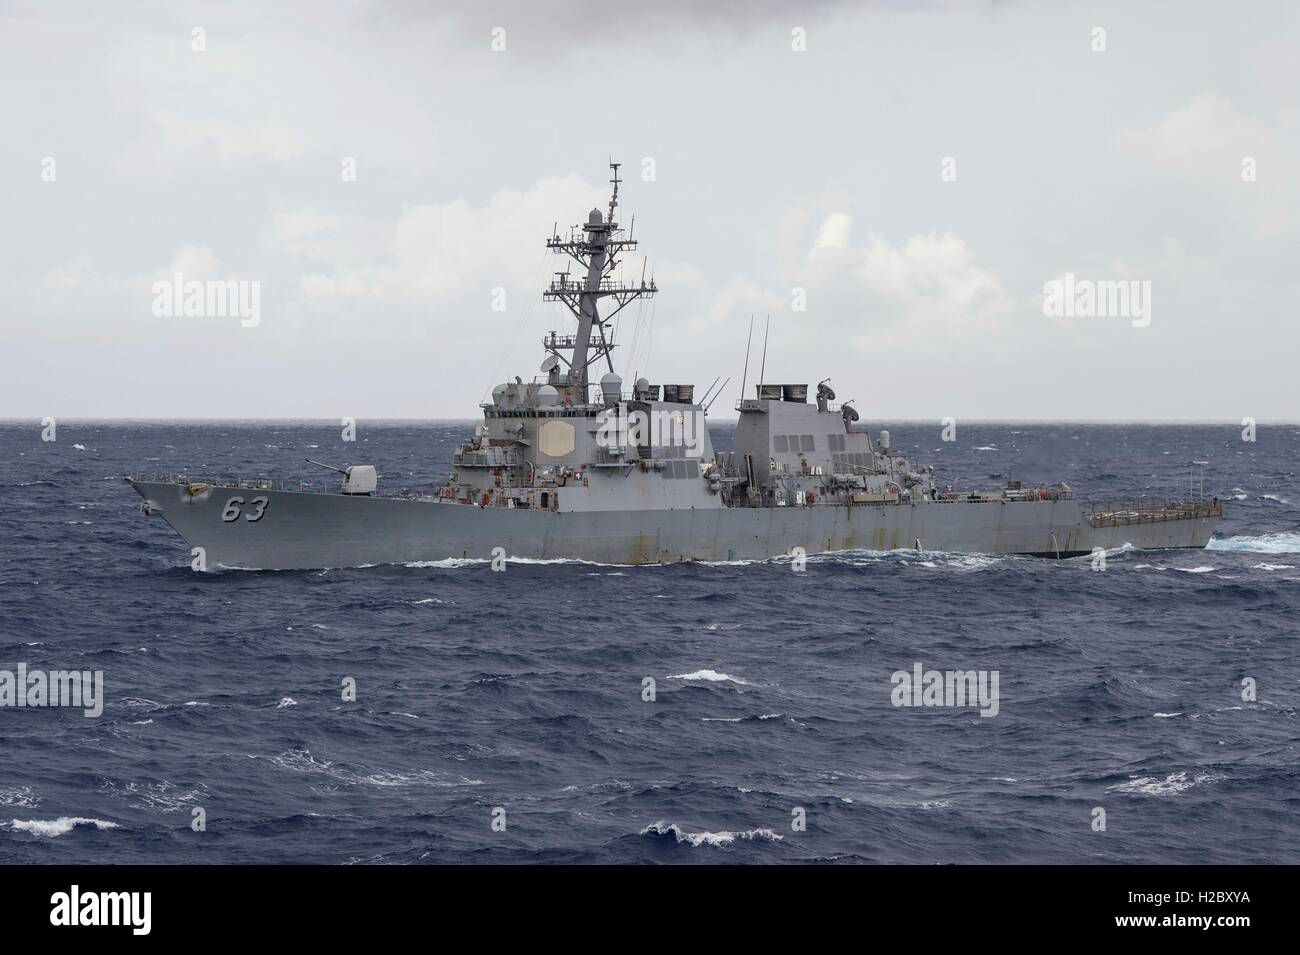 The USN Arleigh Burke-class guided-missile destroyer USS Stethem steams in formation to signify the completion of Stock Photo